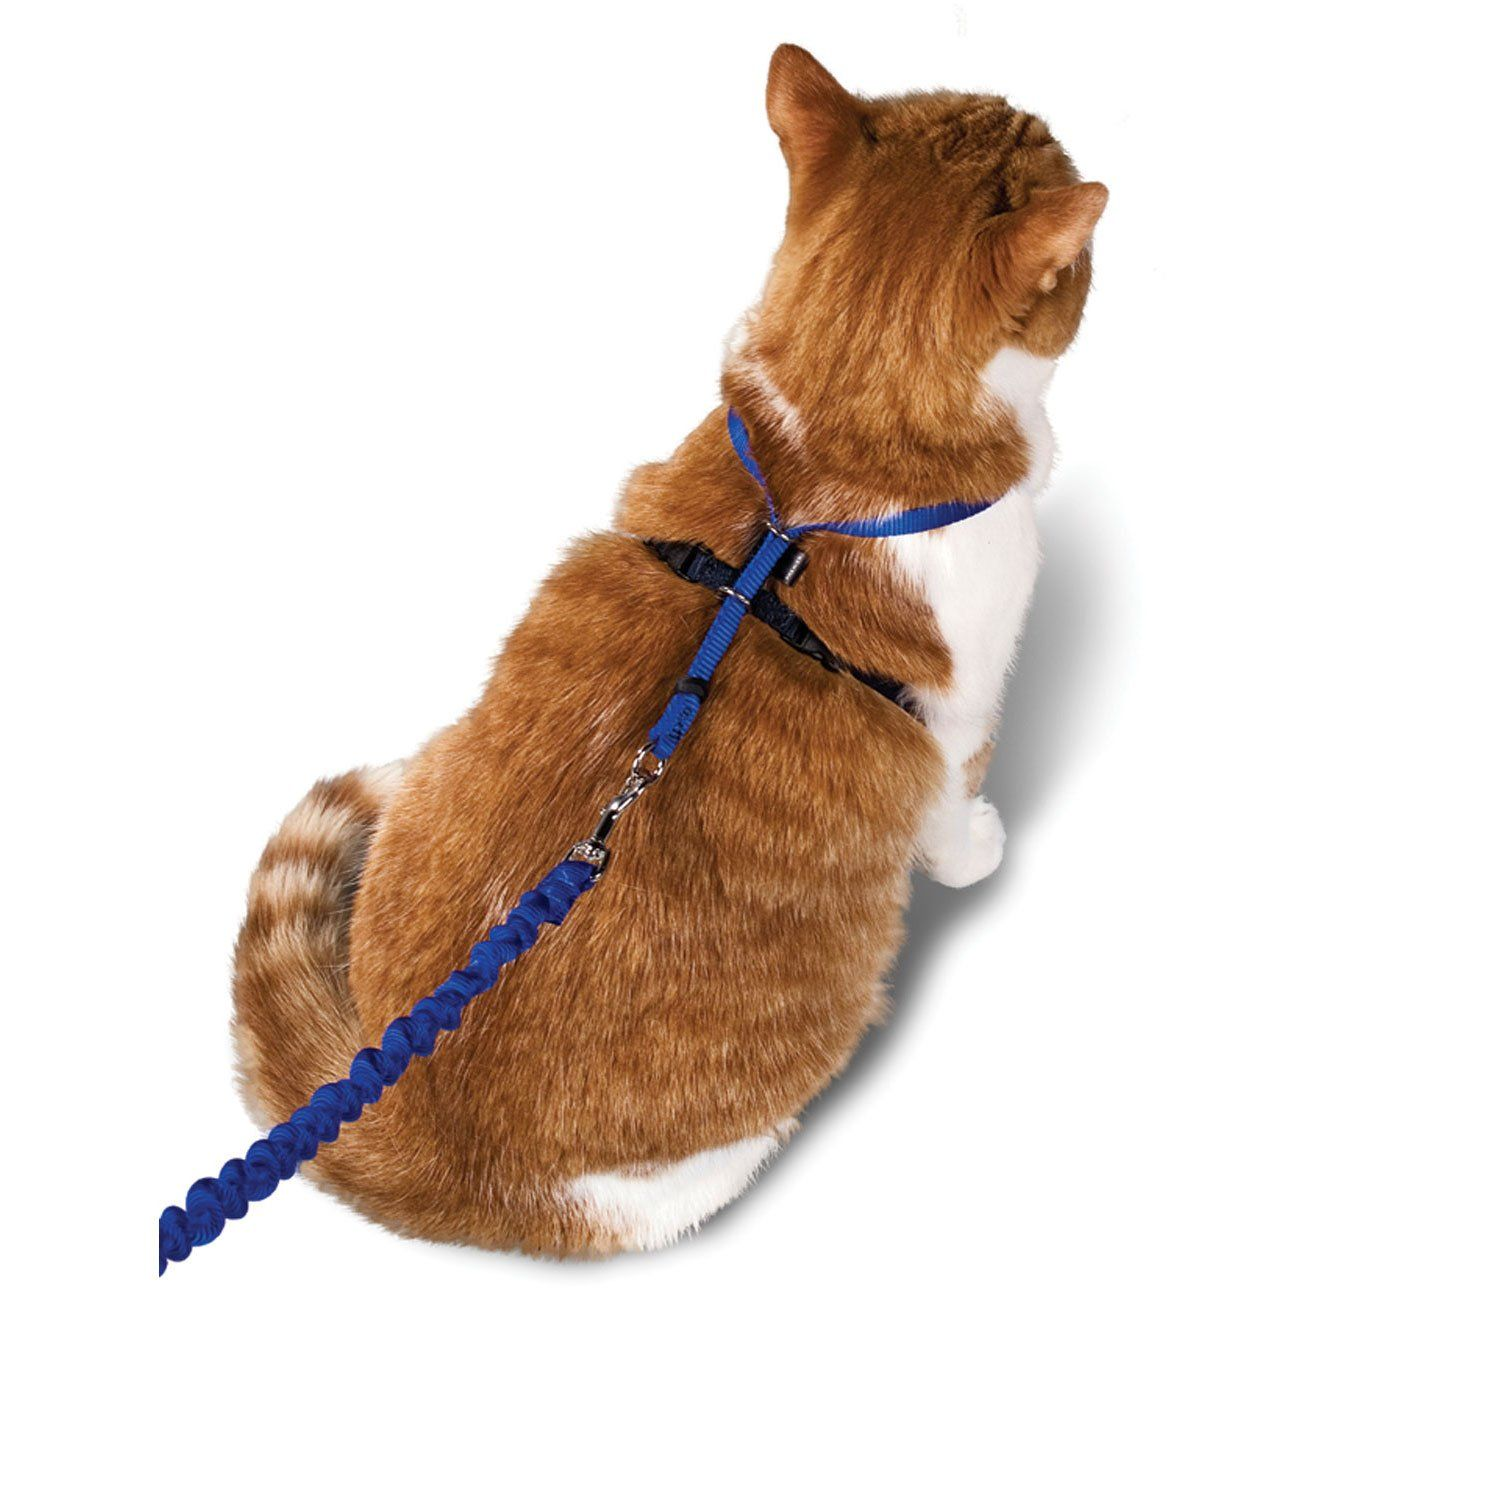 Medium 3 X2f 8 Quot W 10 5 Quot To 14 Quot Girth For Average To Large Cats Bungee Leash Extends From 40 Quot To 64 Quo Cat Leash Cat Harness Cat Care